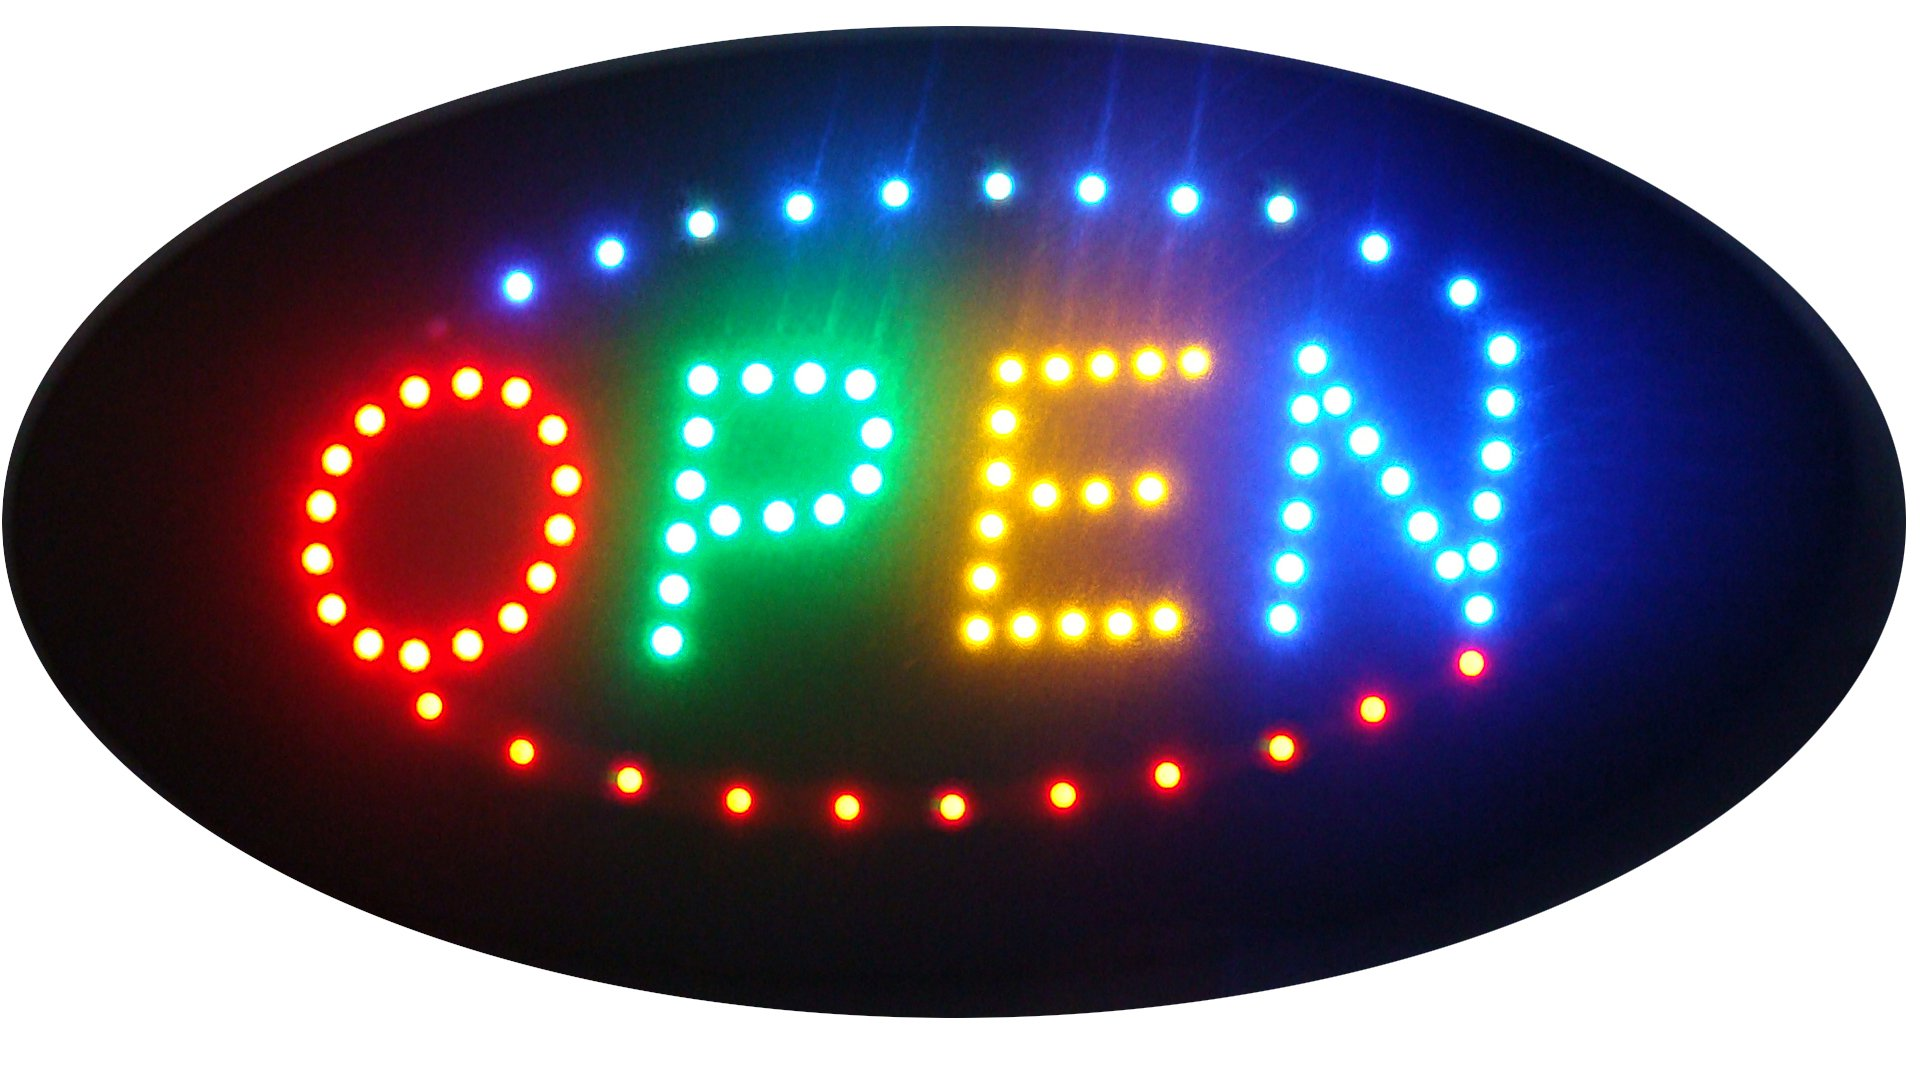 CHENXI Oval OPEN Sign 48 X 25 CM LED OPEN Sign Electric Billboard Bright Advertising Board Flashing Window Display Sign (48 X 25 CM, A)